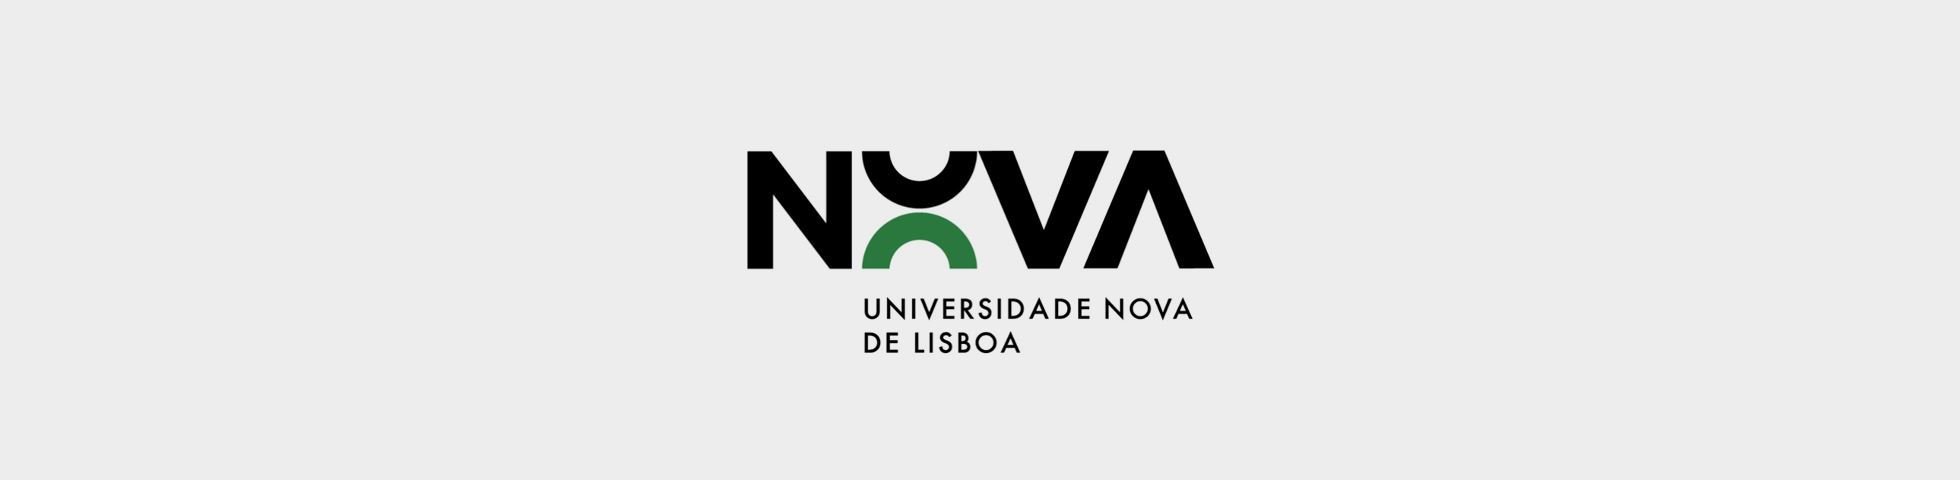 Universidade Nova de Lisboa reinforces its transparency policy